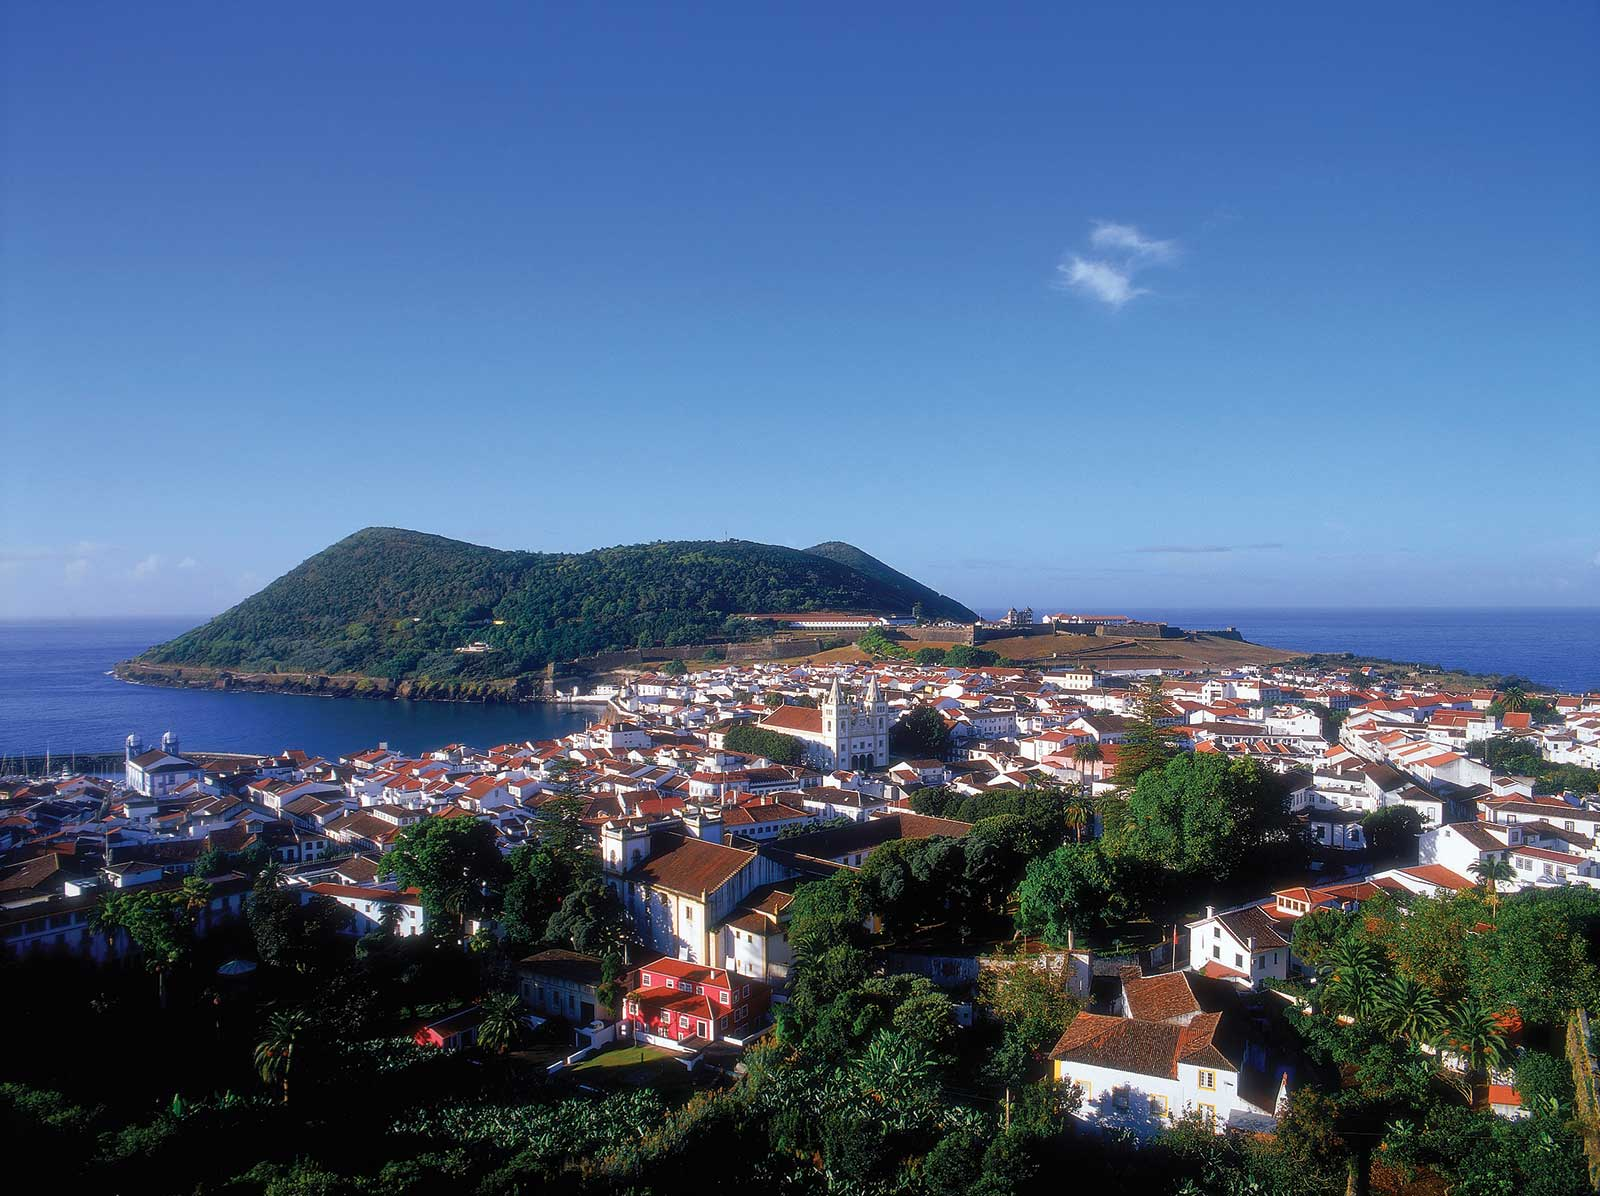 Excursion Tour de l'île de Terceira en partant de Angra do Heroísmo, journée entière